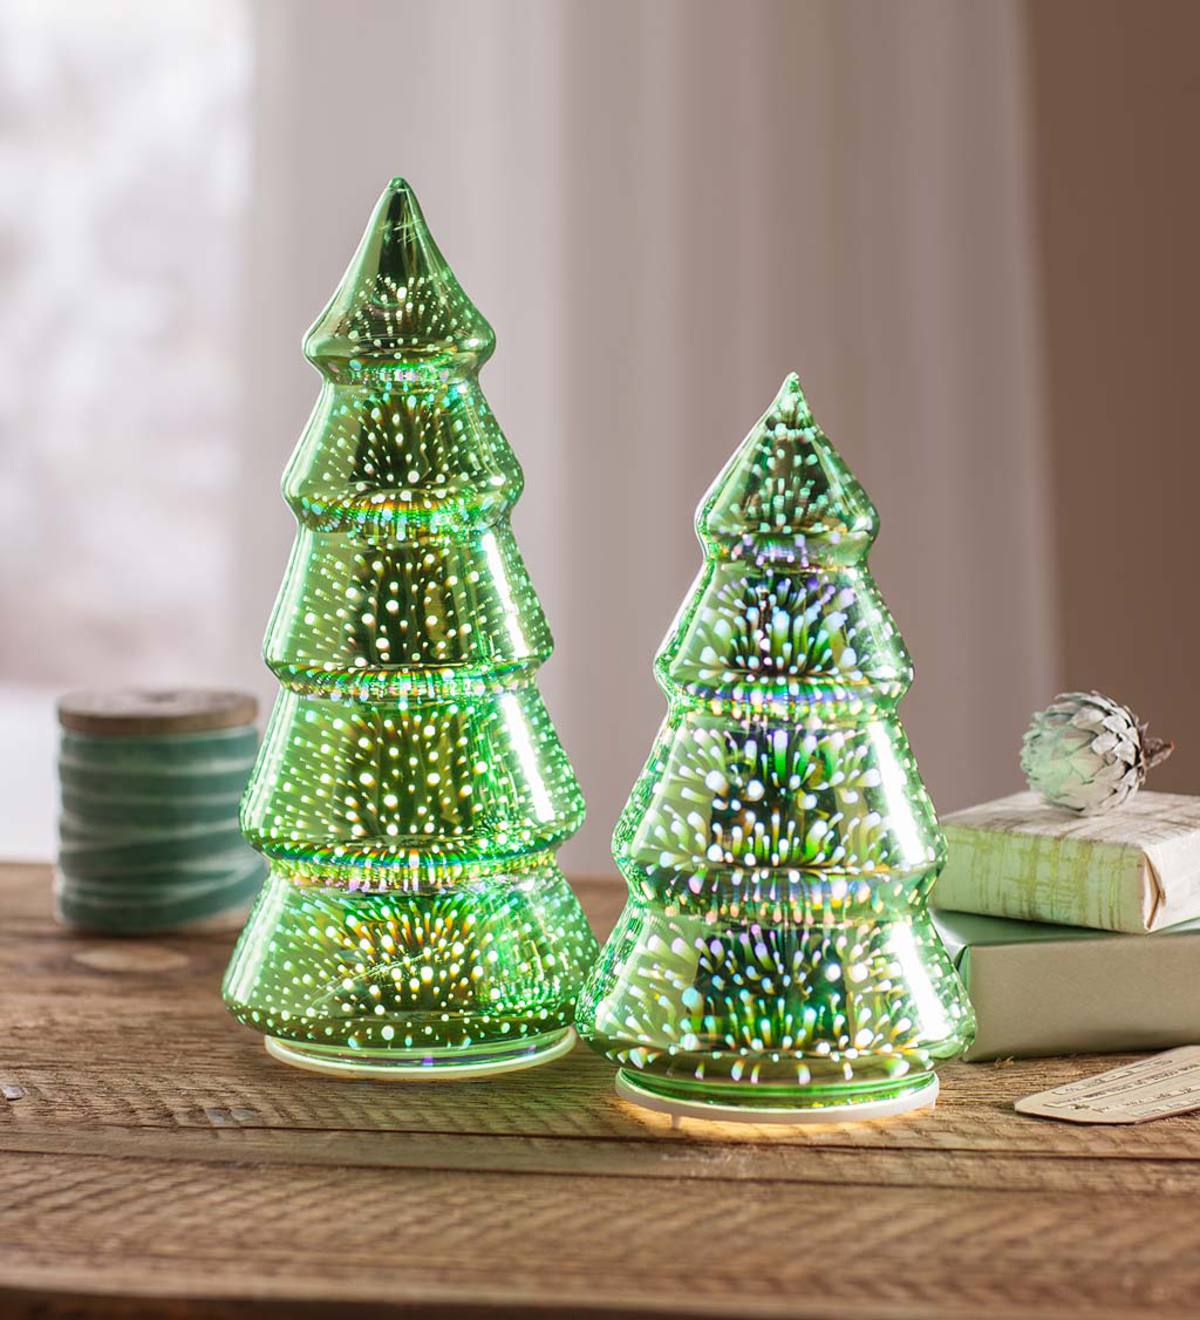 Glass Christmas Trees with 3D Light Effect, Set of 2